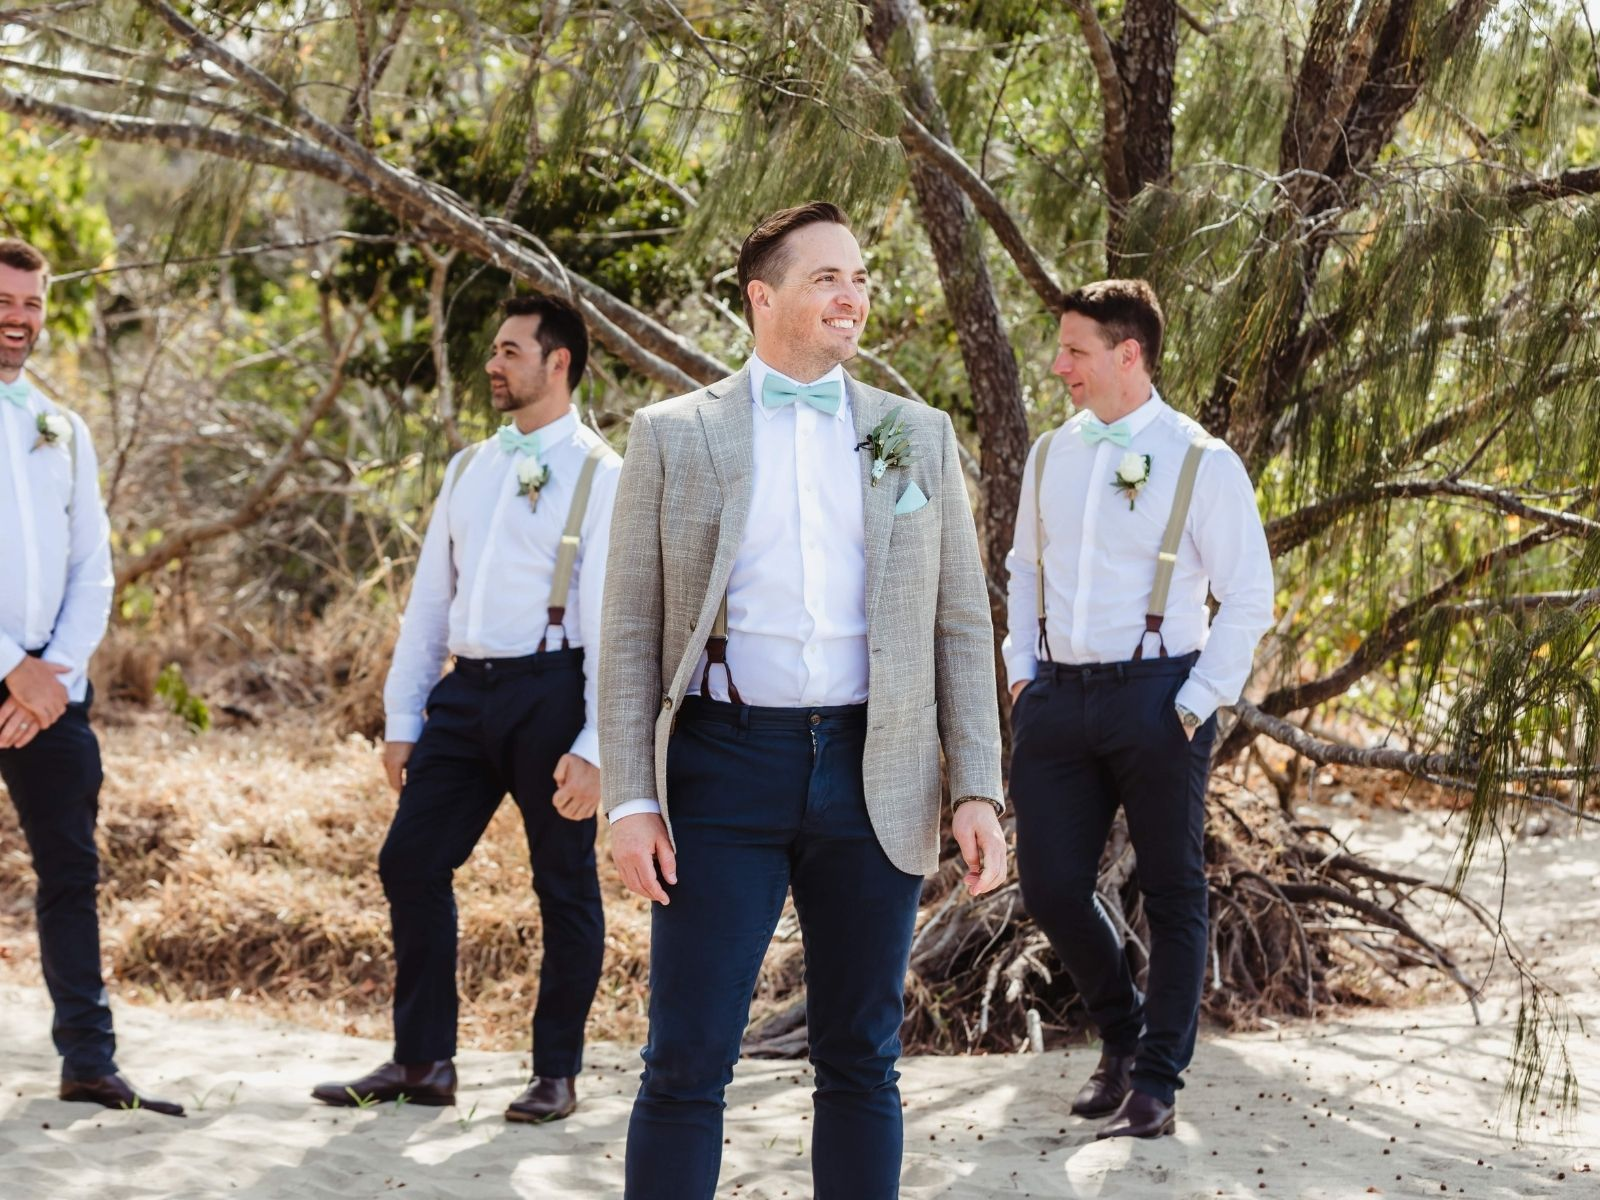 Groom and groomsmen standing on beach by tree at Paradise Cove Resort in the Whitsundays